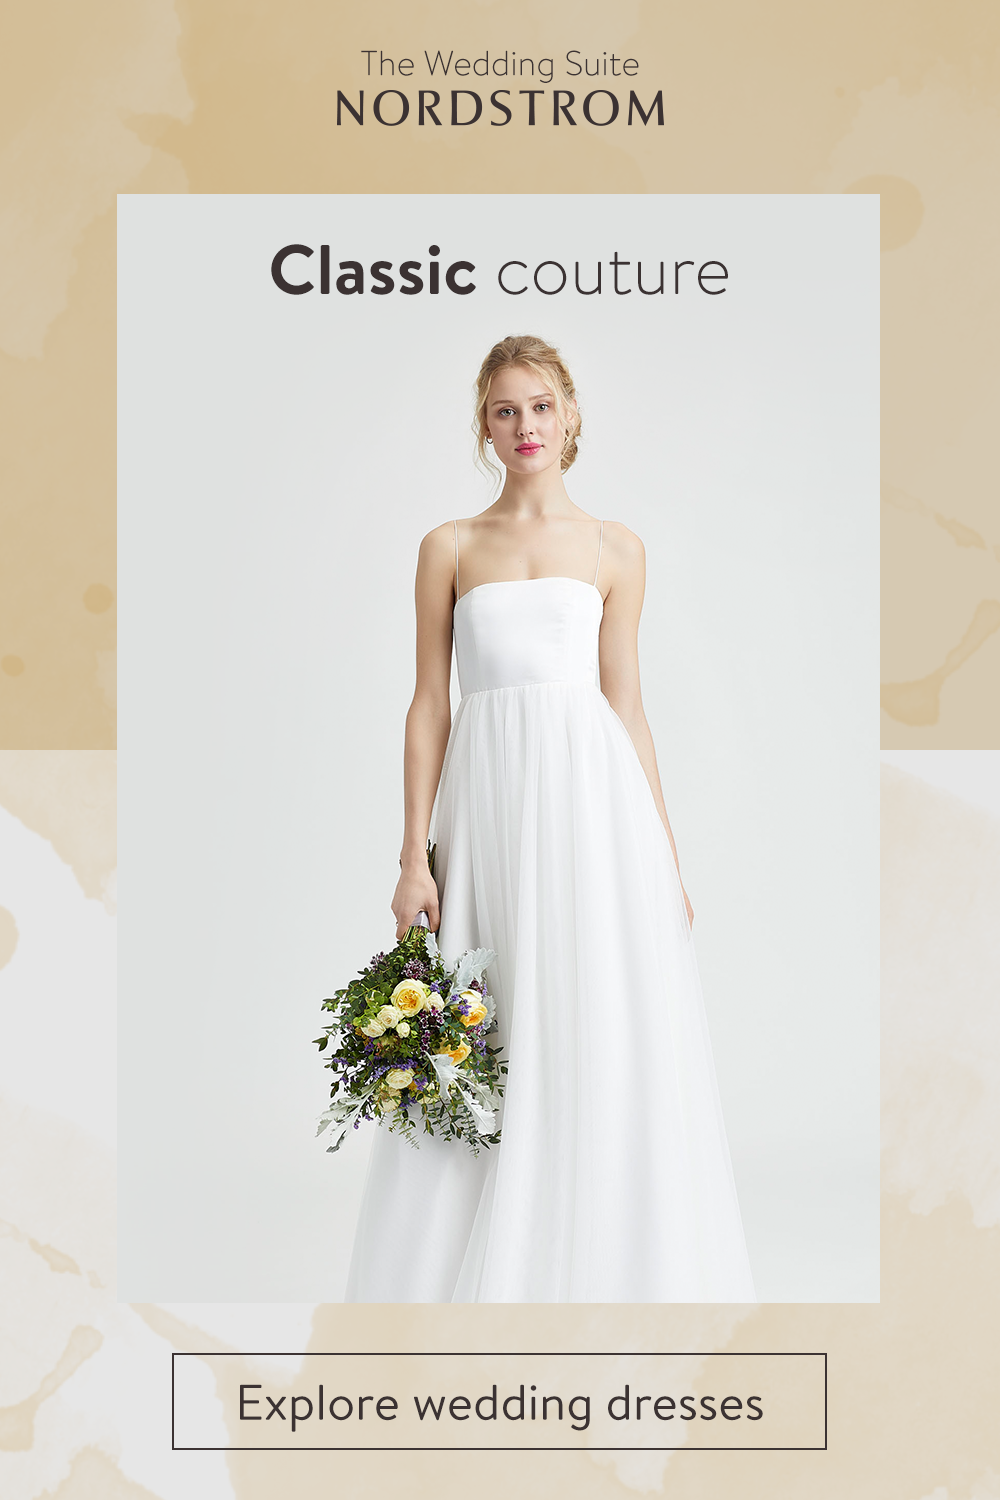 3b79309139d Explore classic couture wedding gowns at the Nordstrom Wedding Suite. From  strapless styles to sleek silhouettes